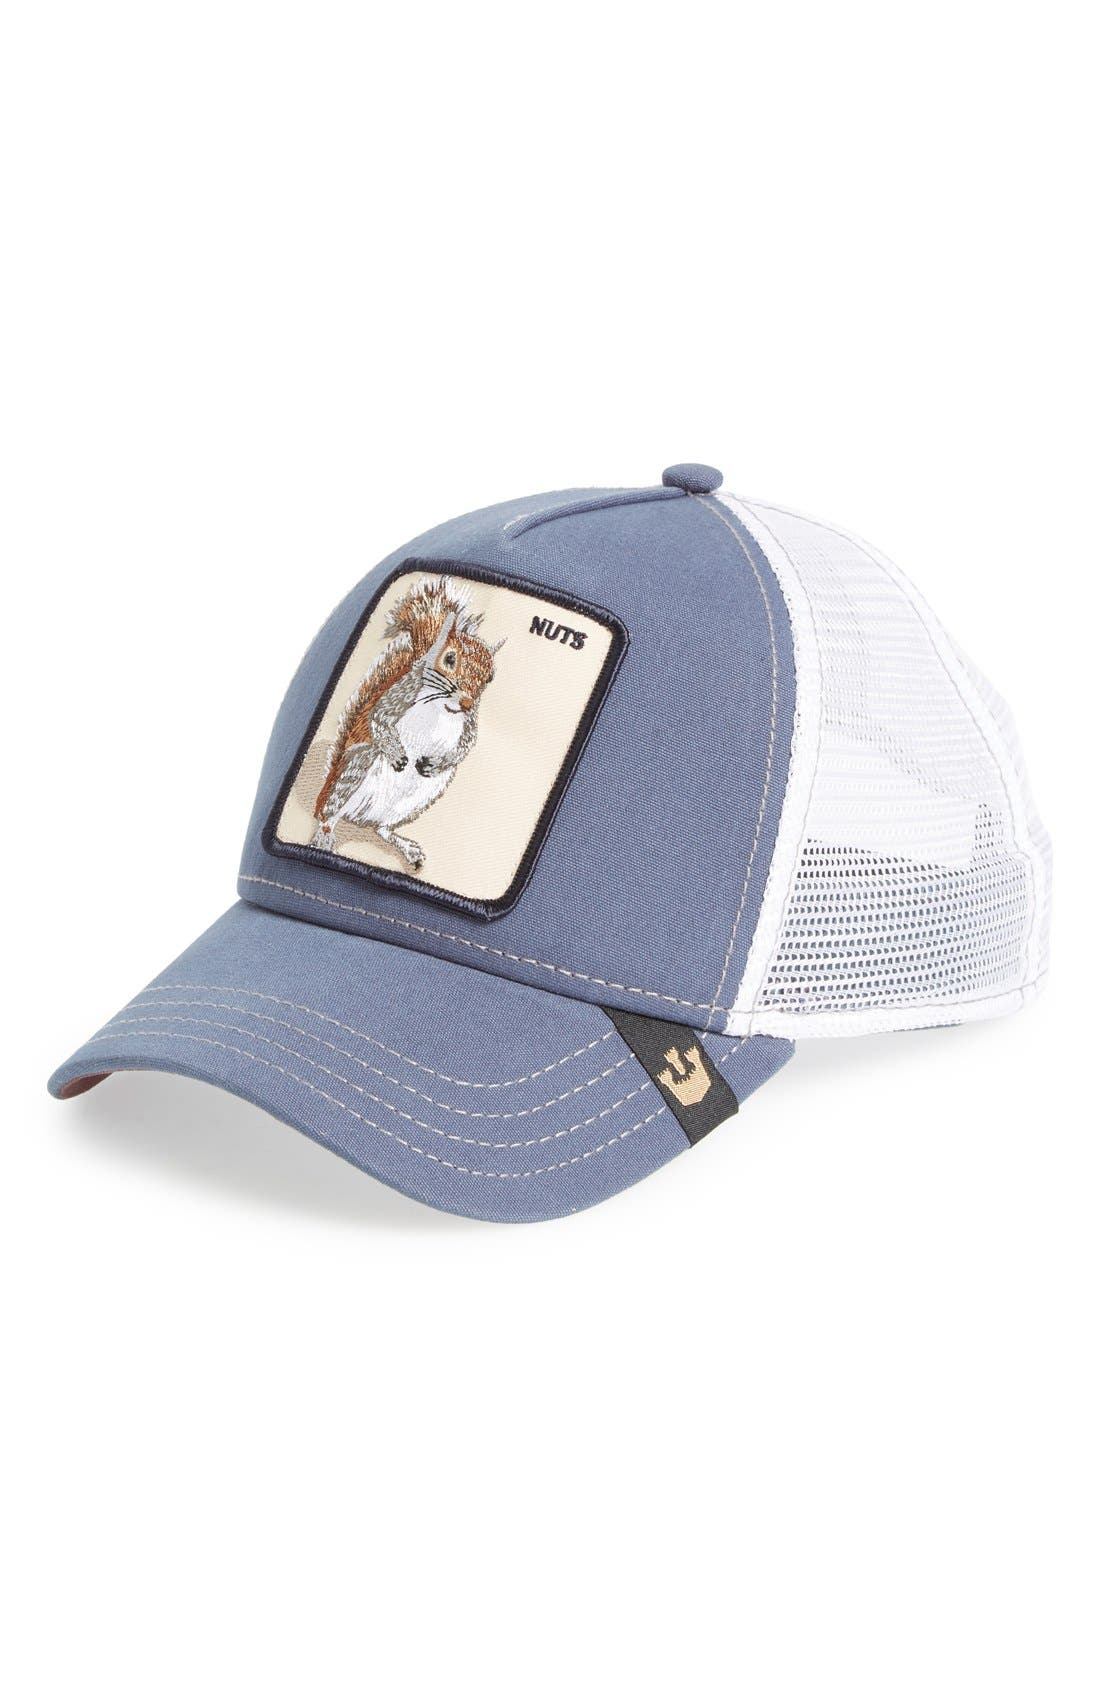 'Nutty' Trucker Hat,                             Main thumbnail 1, color,                             BLUE